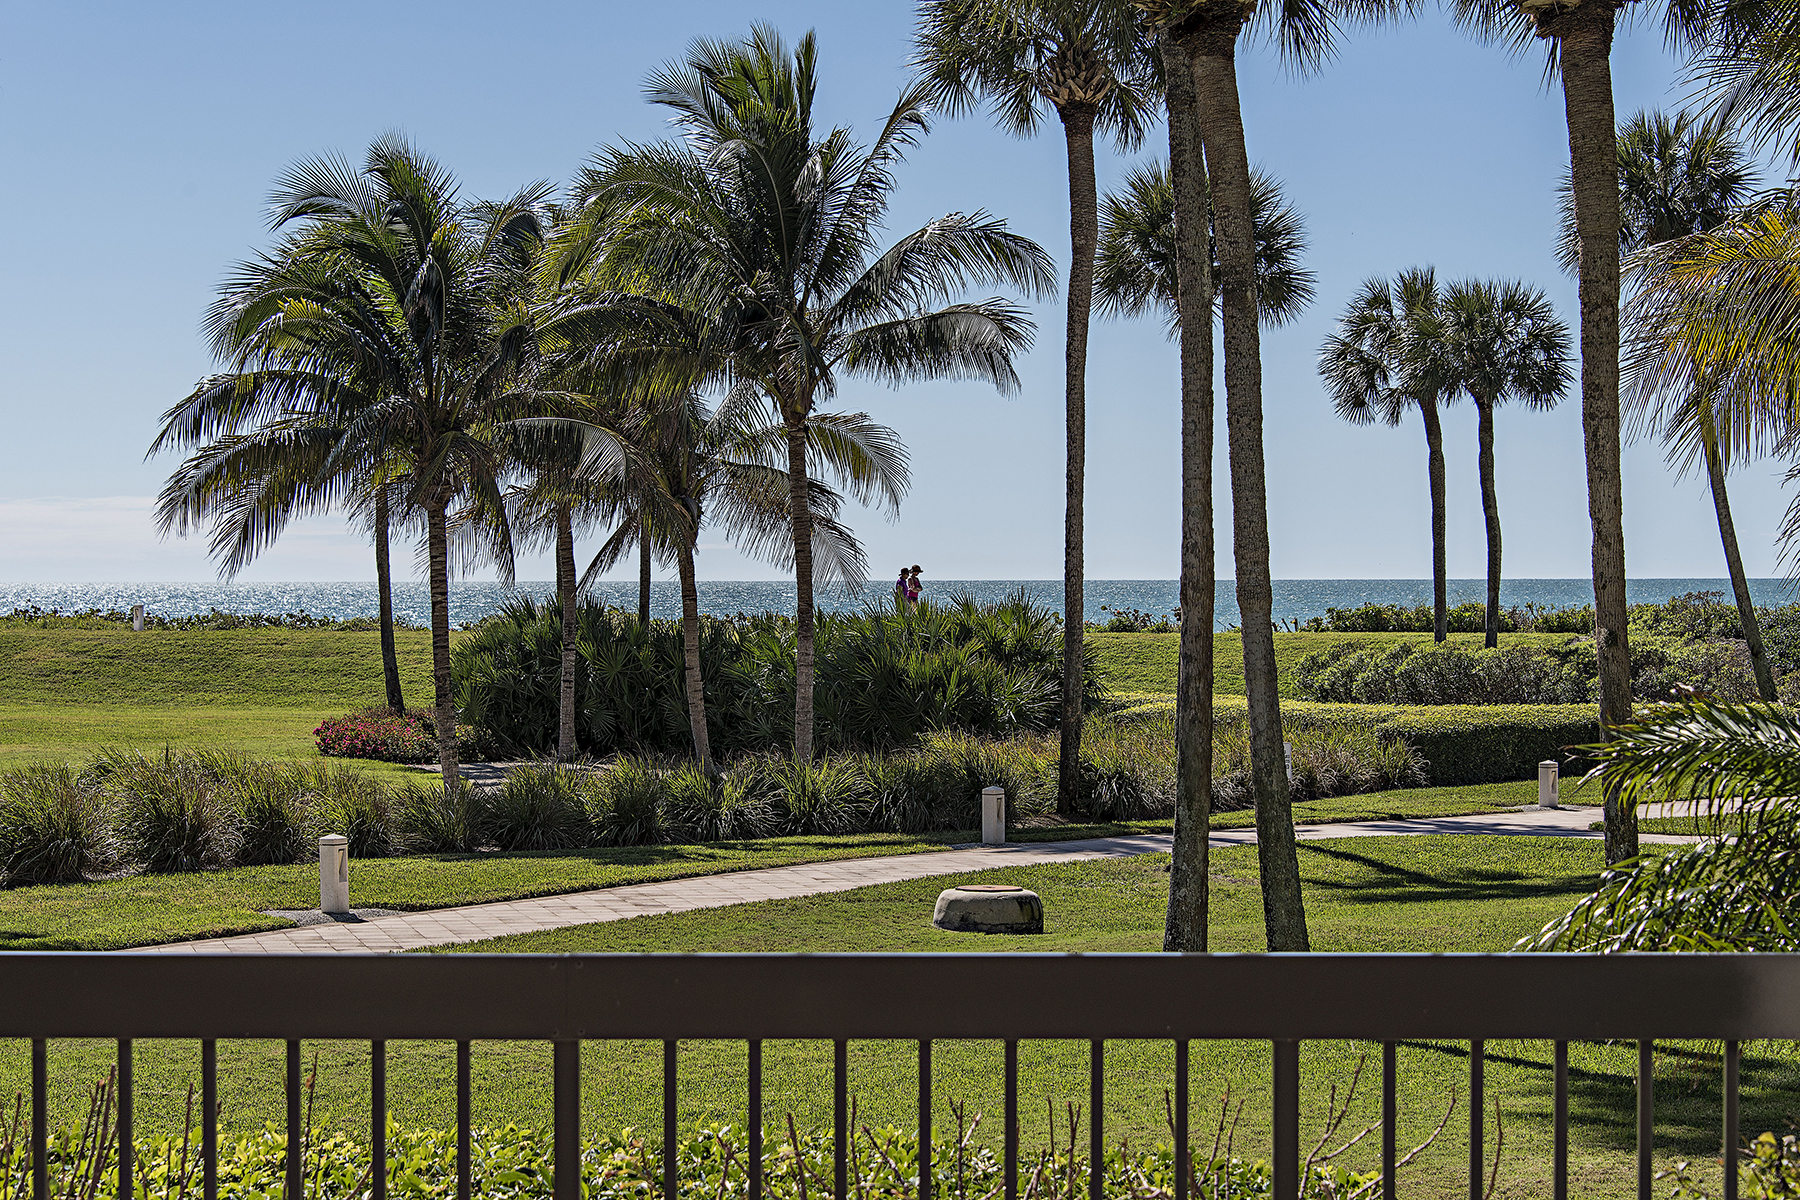 Condominium for Sale at PARK SHORE - ESPLANADE CLUB 4551 Gulf Shore Blvd N 103 Naples, Florida, 34103 United States